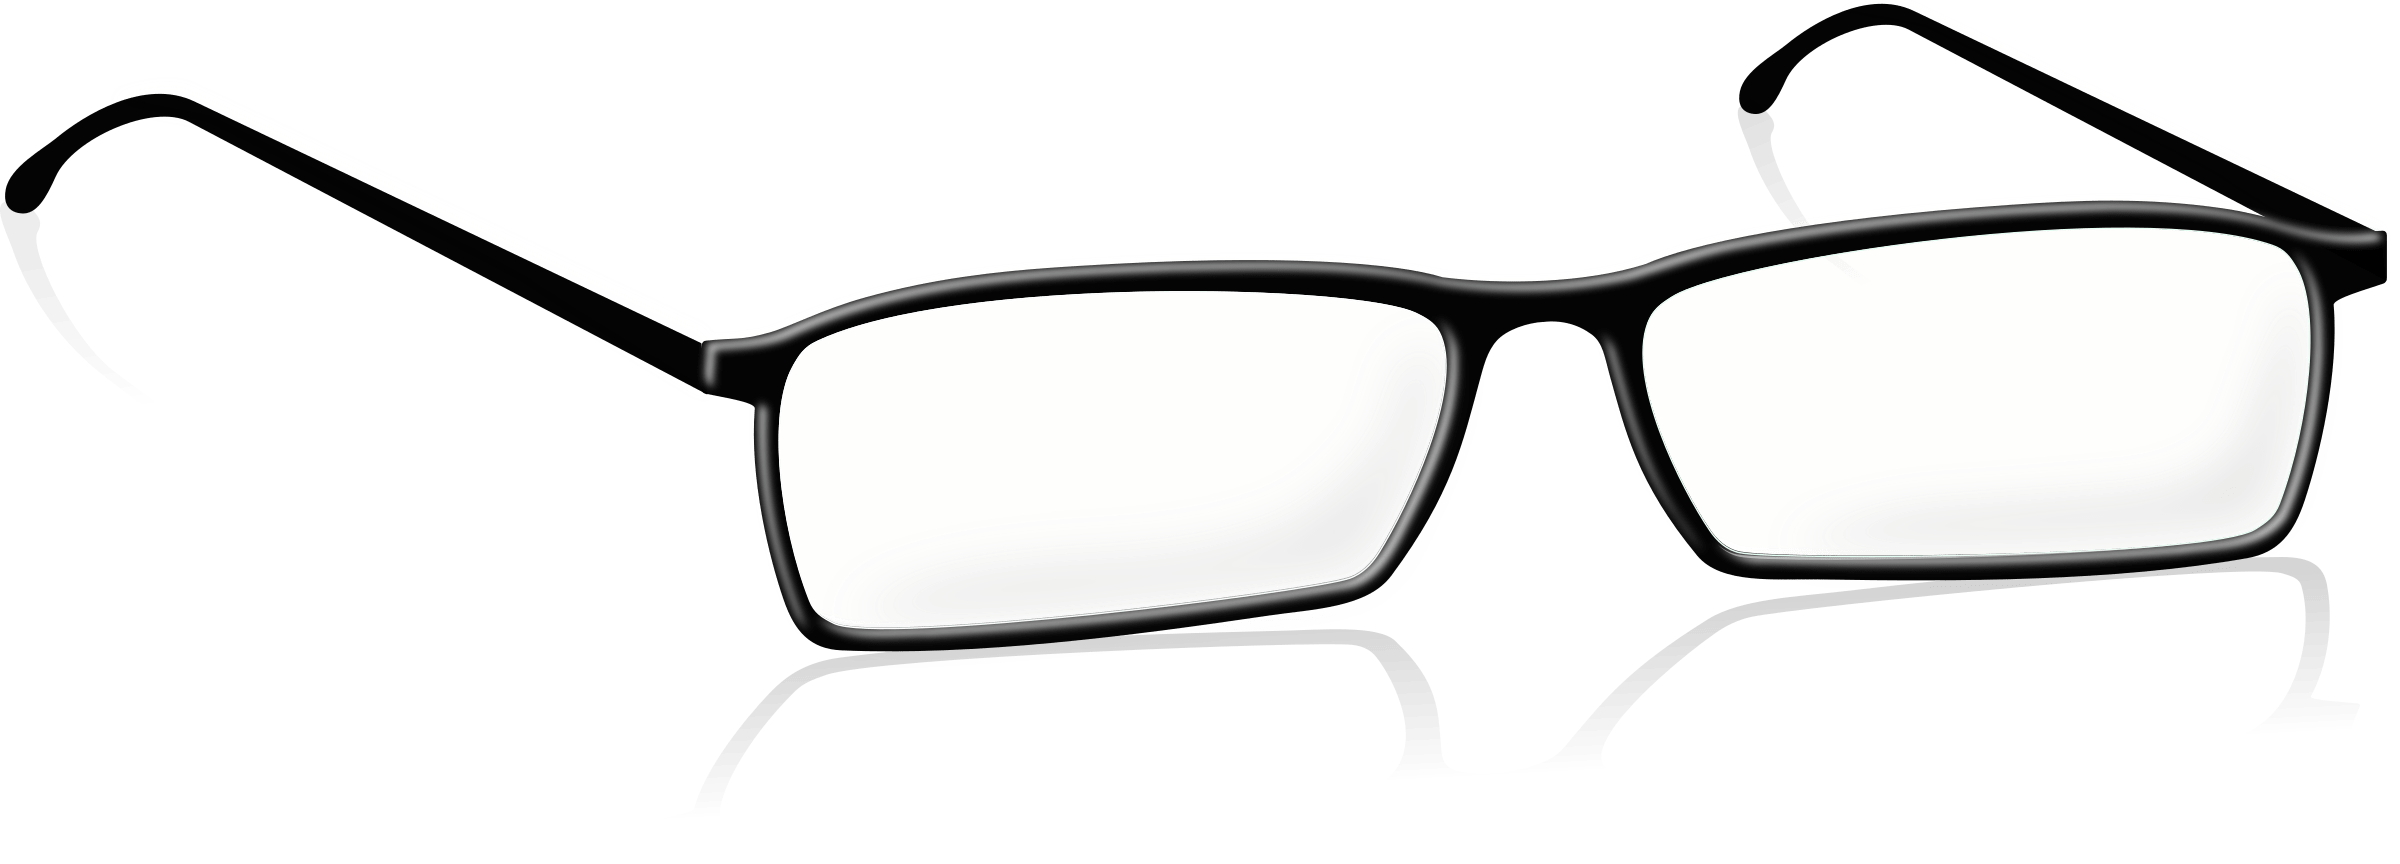 Glass Clipart Sunglass Glass Sunglass Transparent Free